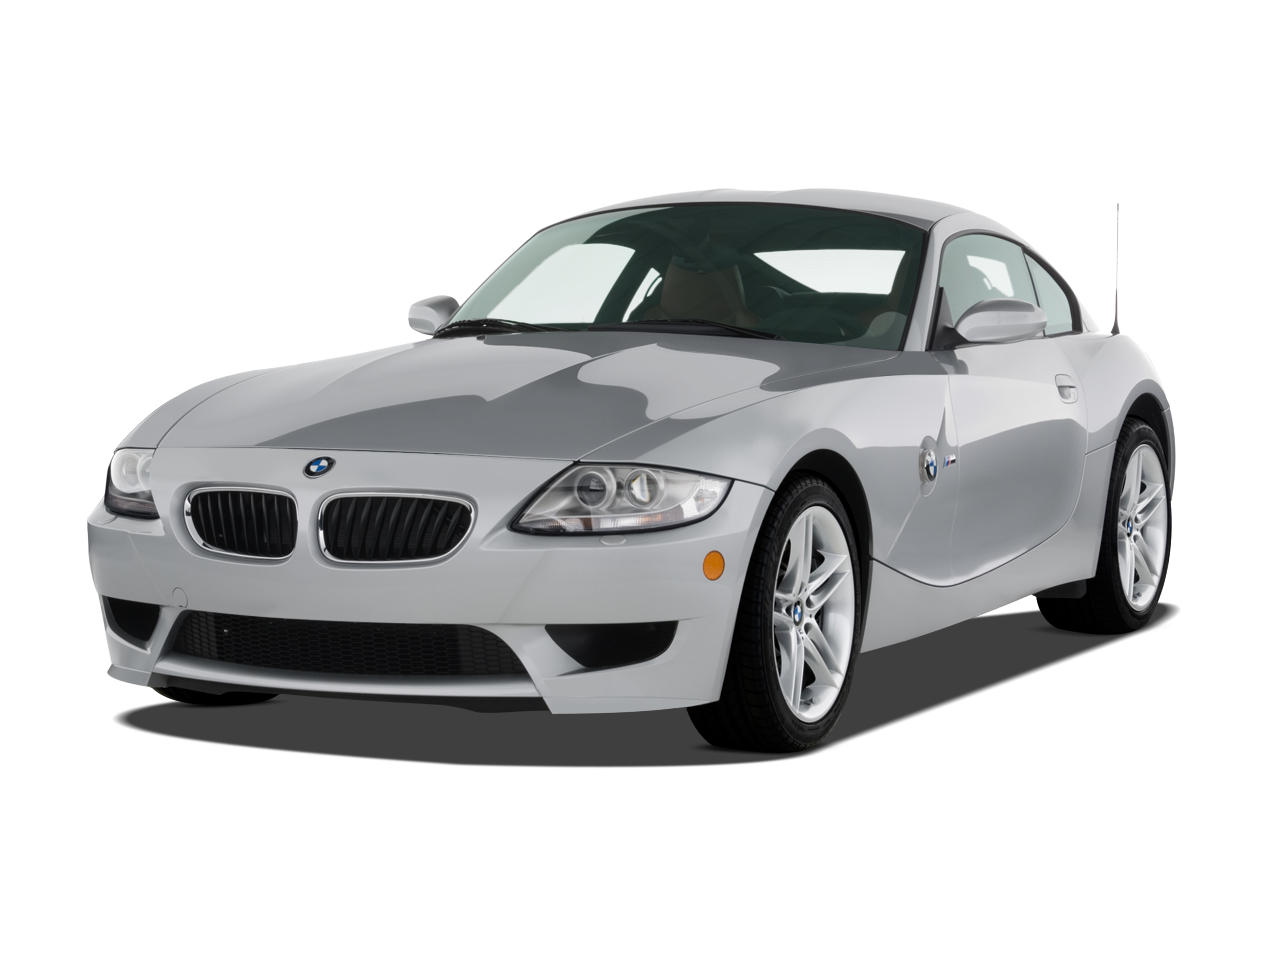 2008 Bmw Z4 M Roadster Bmw Roadster Review Automobile